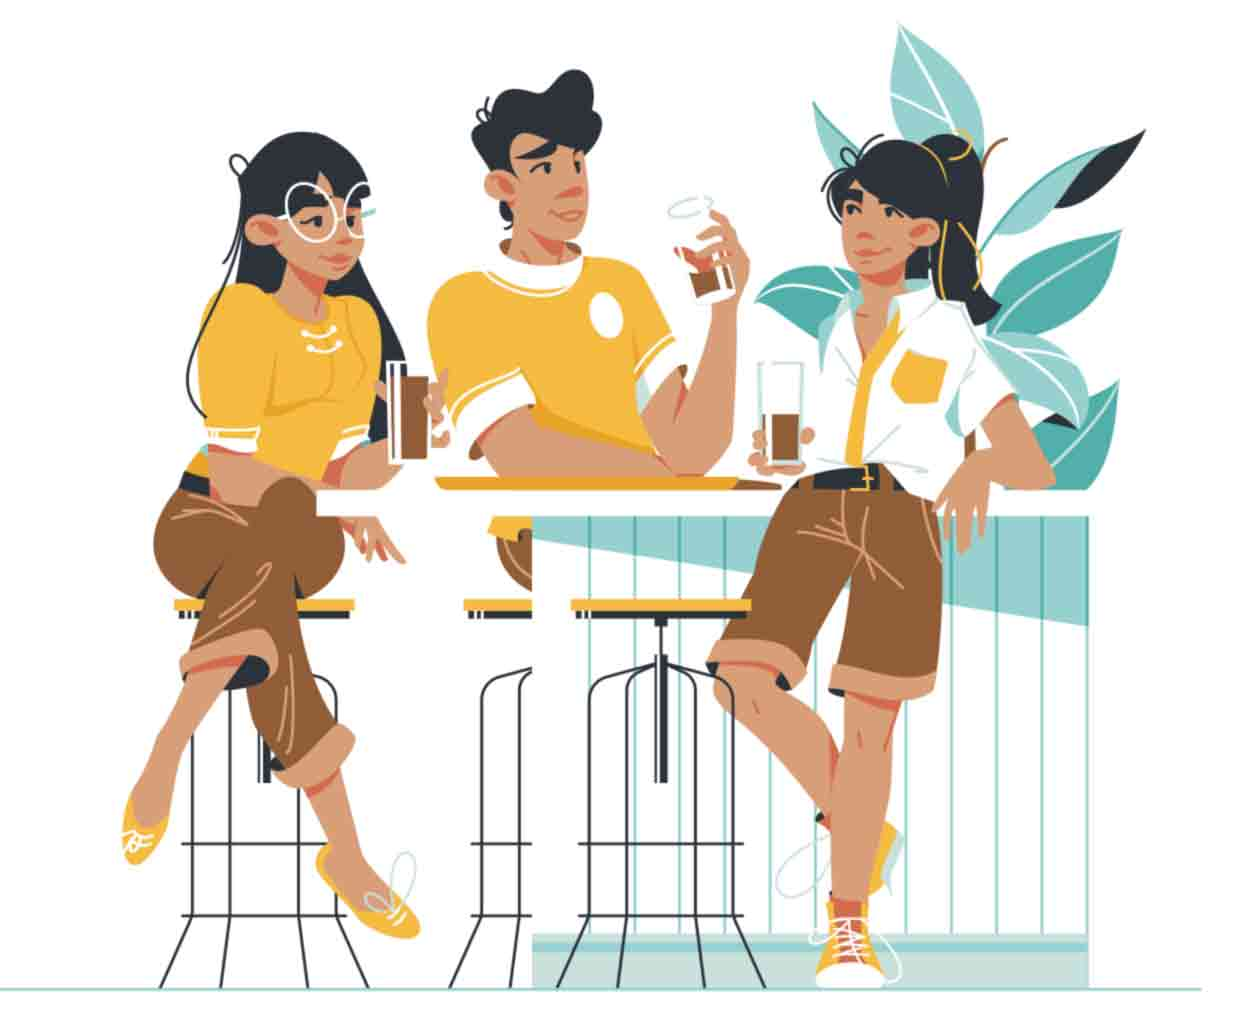 Fun character vector illustrations of friends and colleagues.